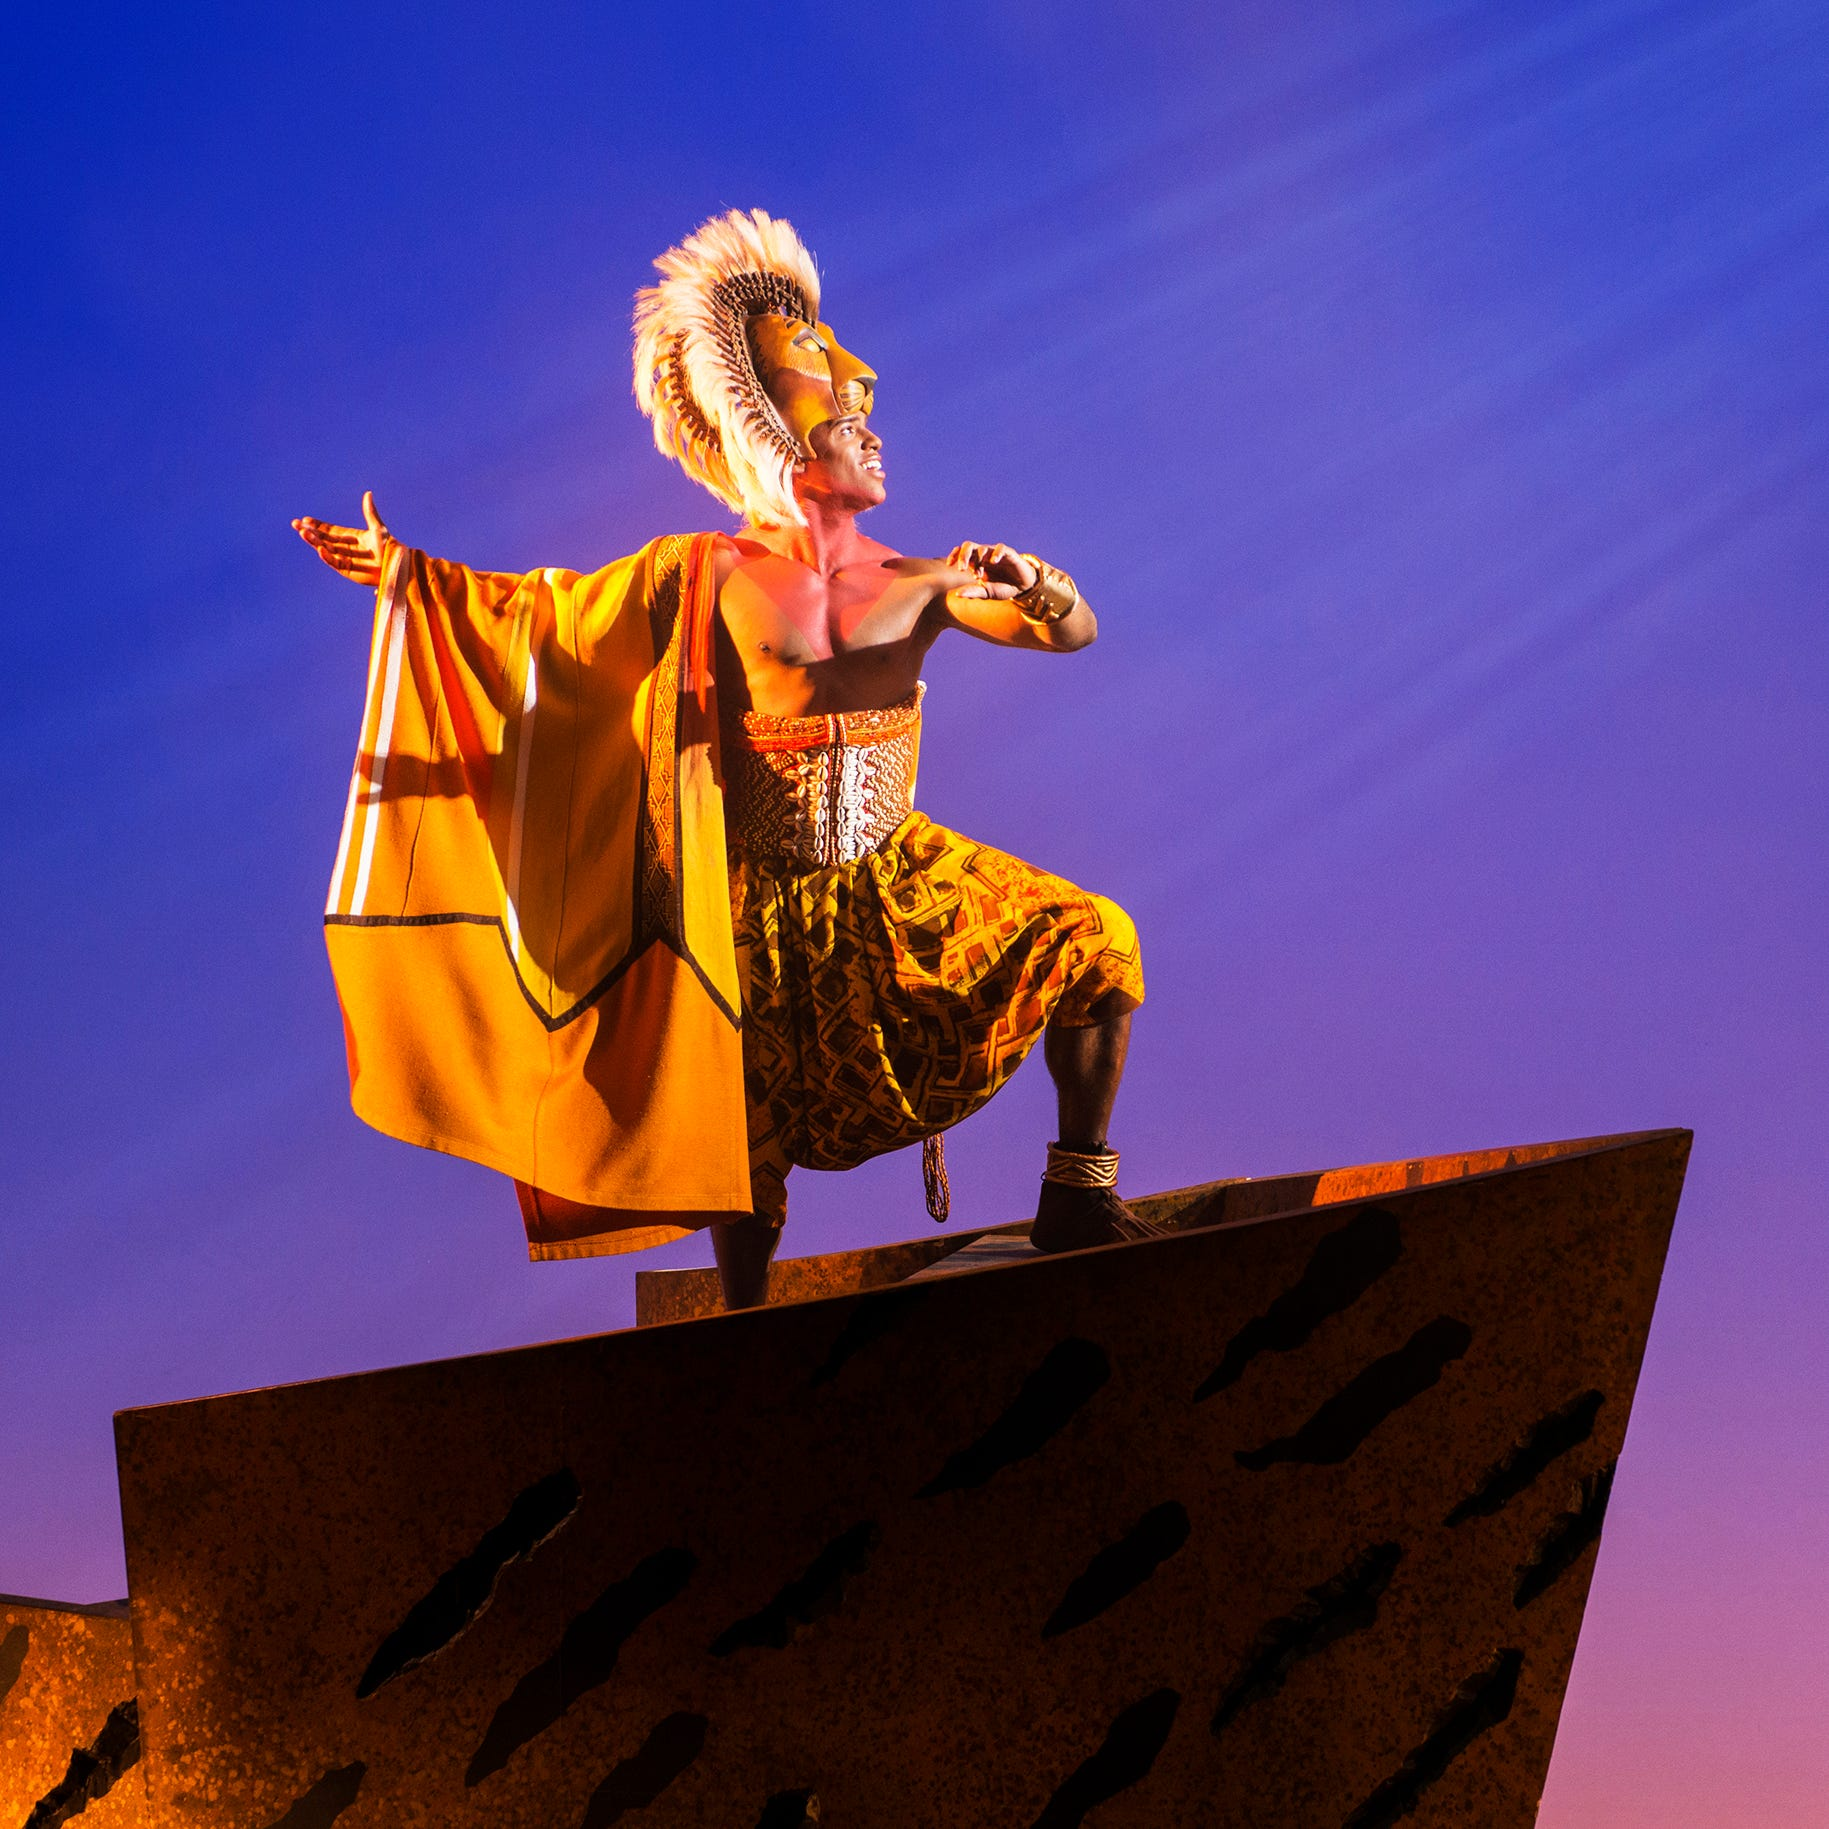 Review: Disney's blockbuster musical 'The Lion King' is still a joy to behold